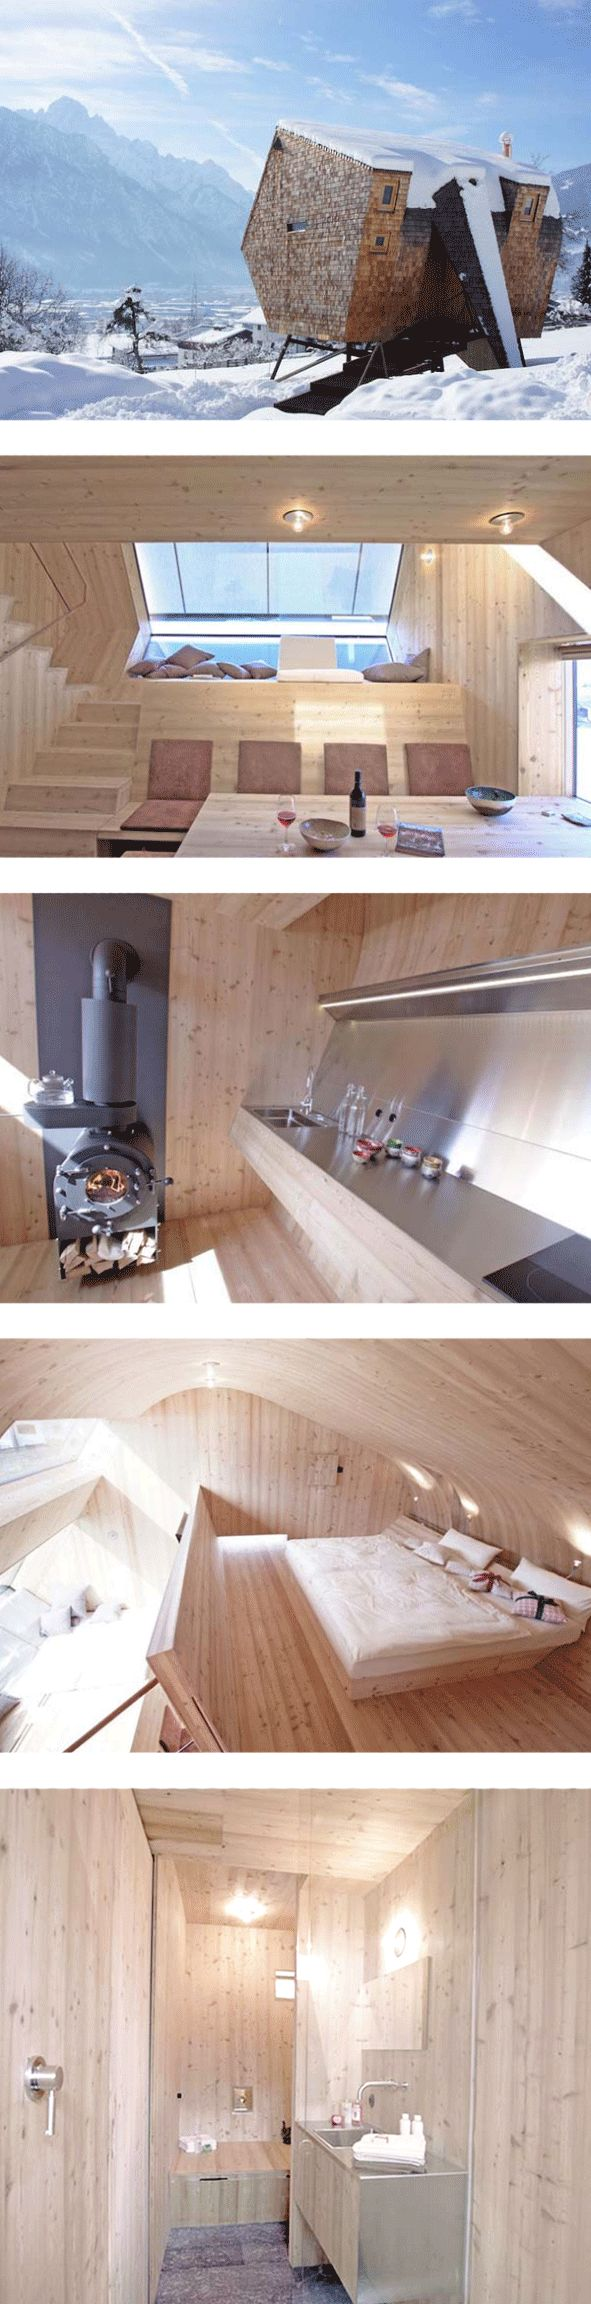 A 484 square foot minimalist home with breathtaking panoramic views, exposed wood, and lots of natural light. The Uvogel by Peter Jungmann